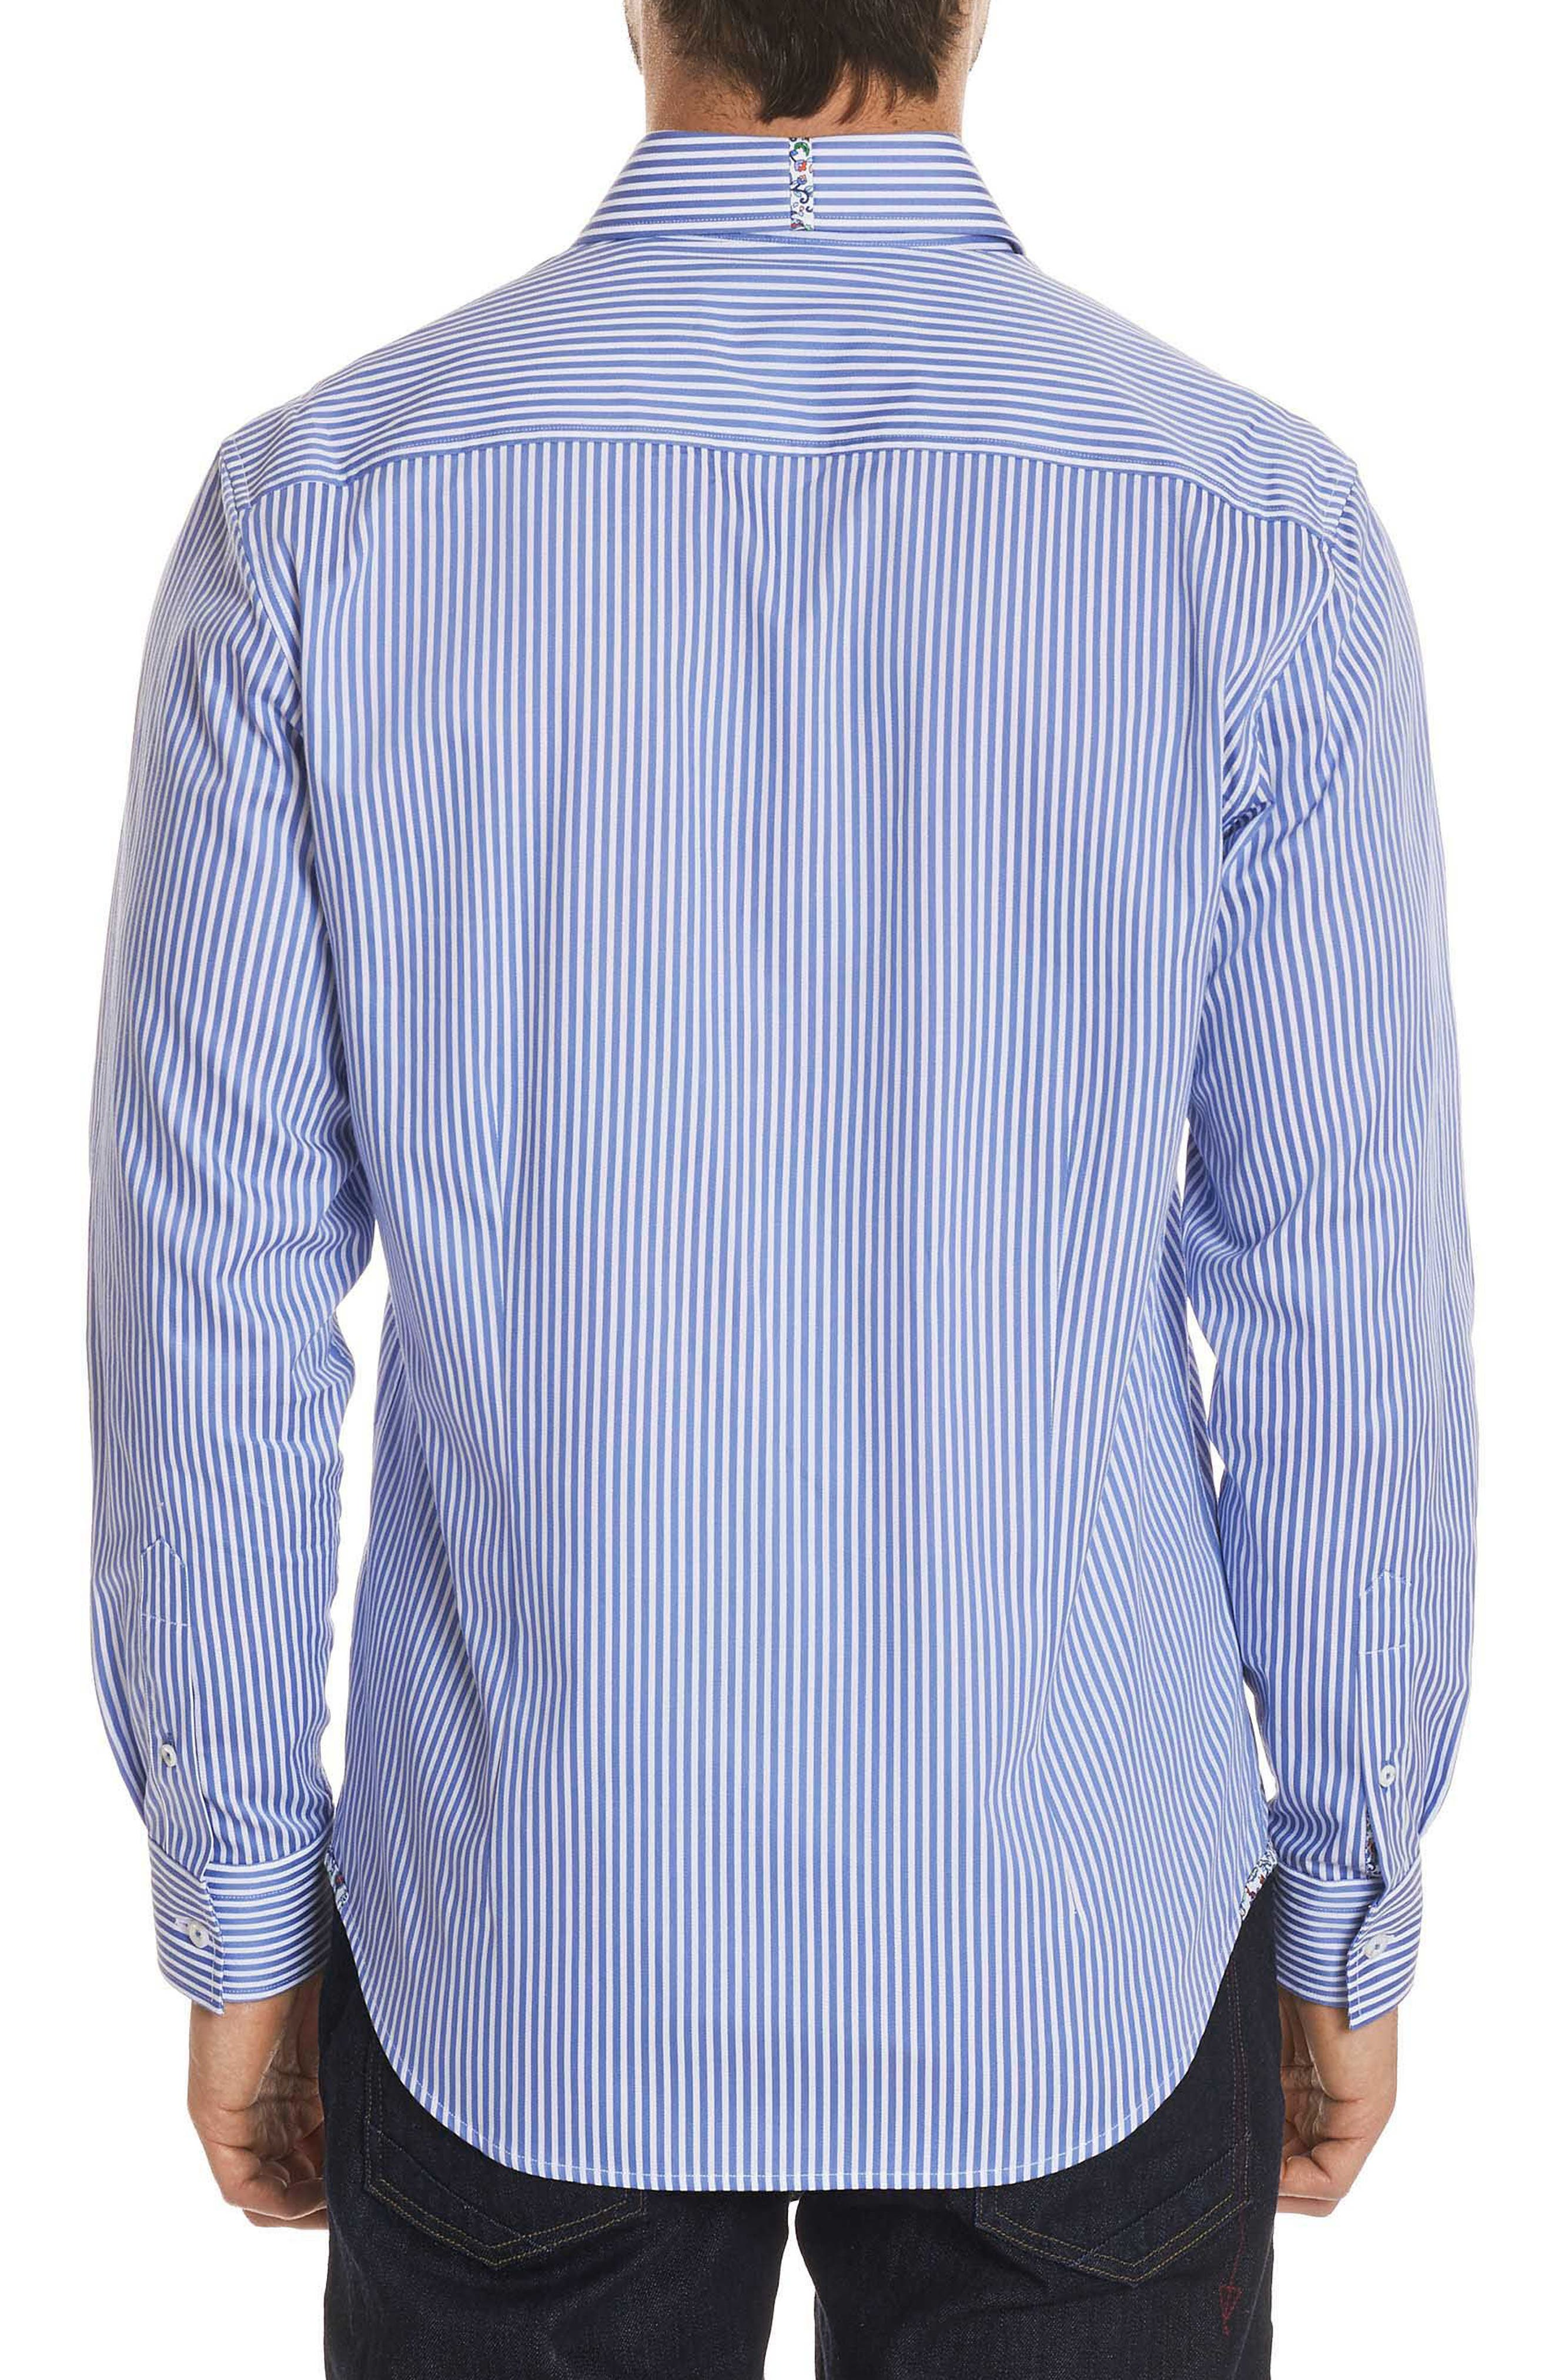 Luther Classic Fit Stripe Sport Shirt,                             Alternate thumbnail 2, color,                             Steel